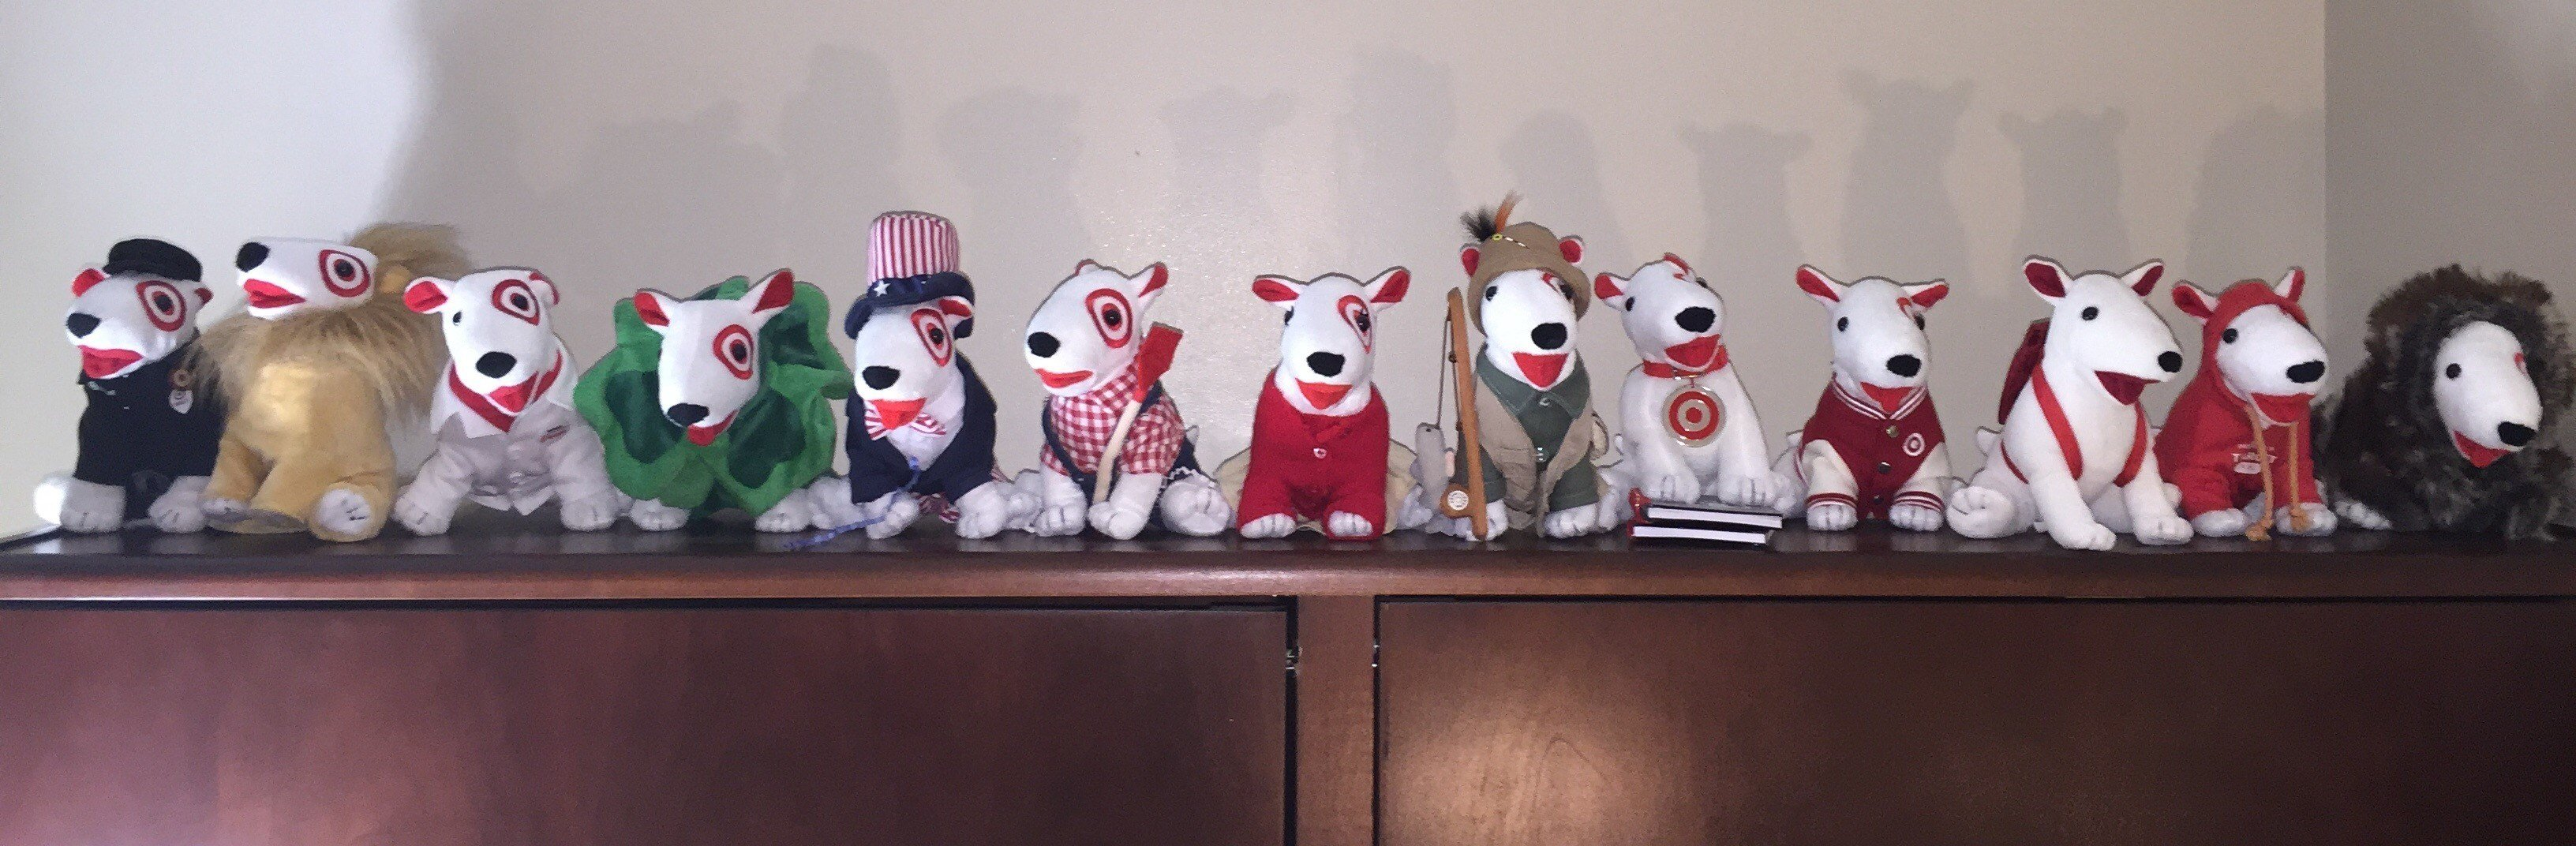 Clara Samuels, career associate at the UK Stuckert Career Center, proudly displays the 13 Target Dogs that Rodney Branum gave her before his death.